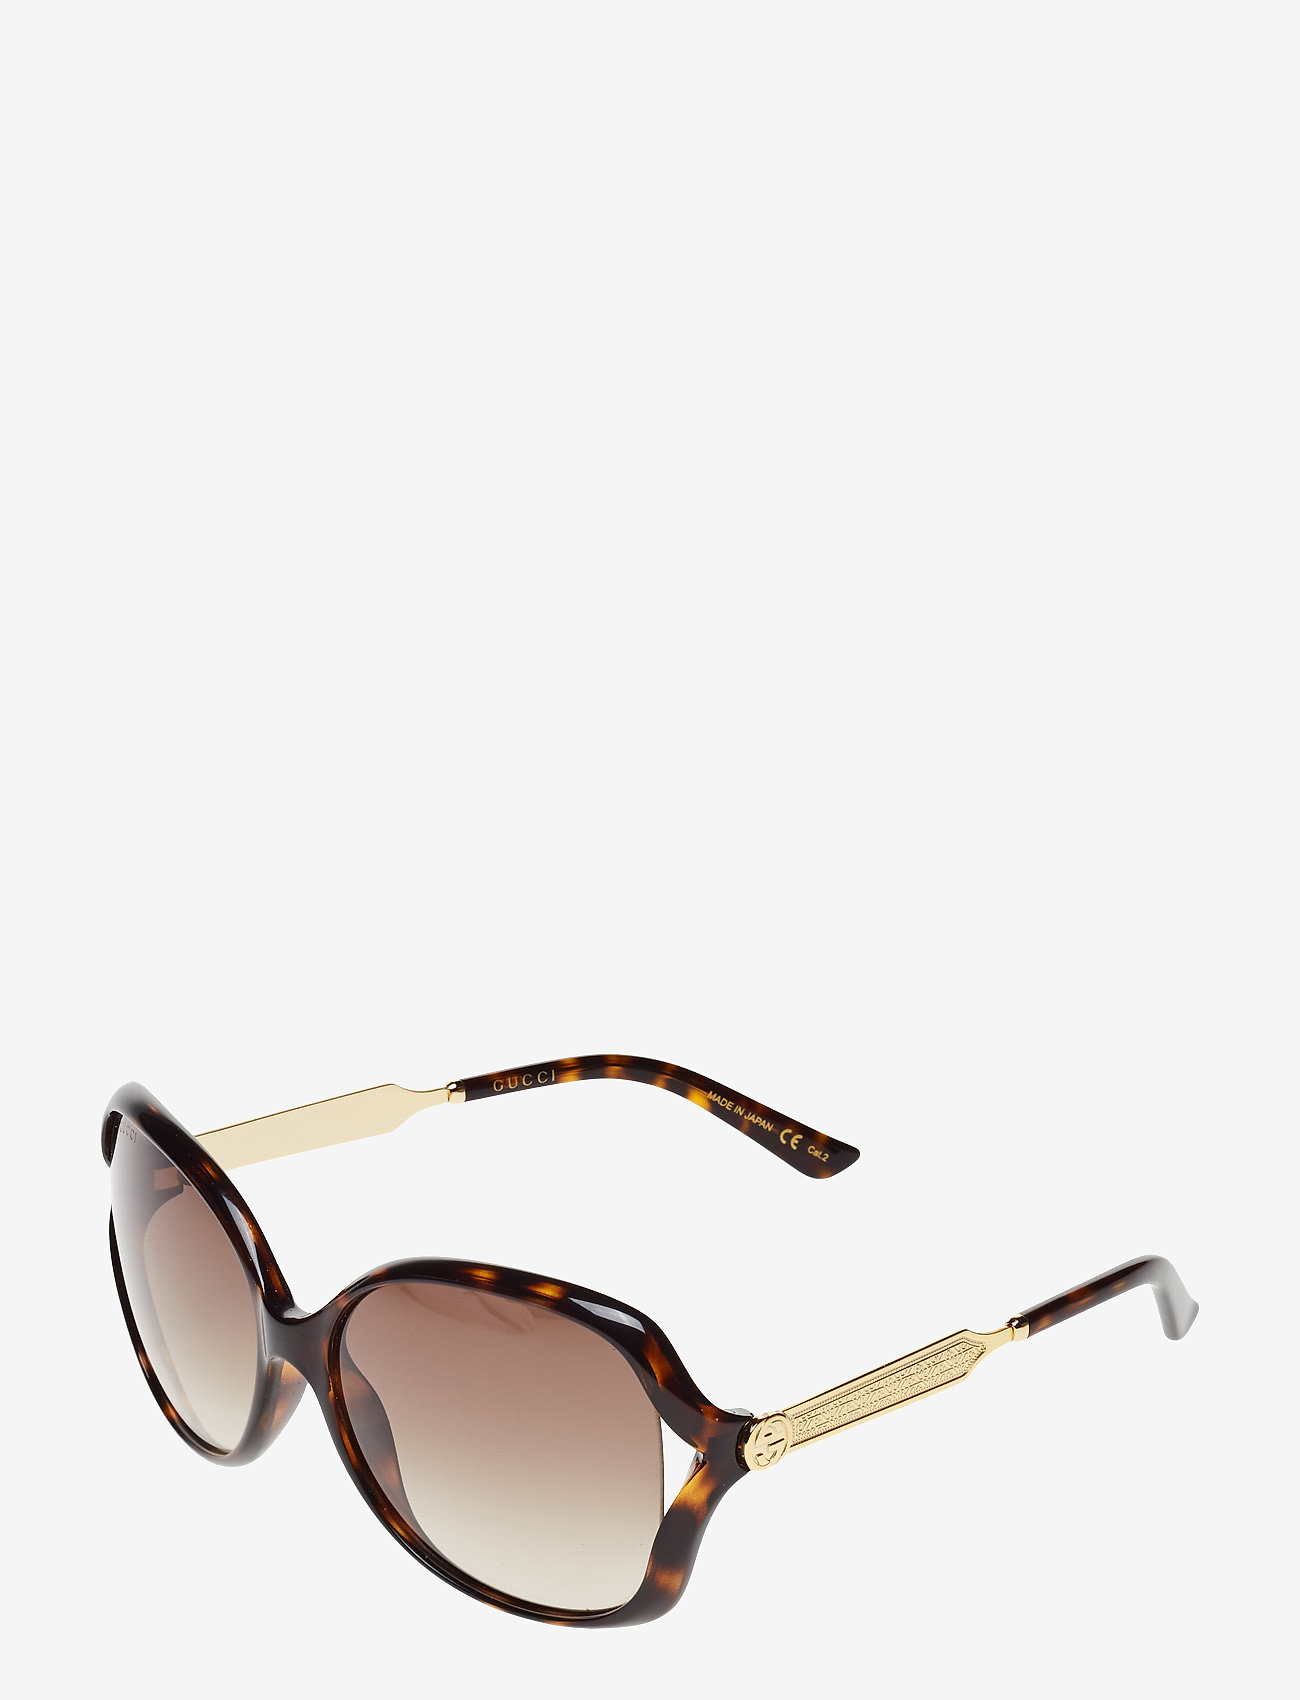 Gucci Sunglasses - GG0076S - round frame - avana-gold-brown - 1